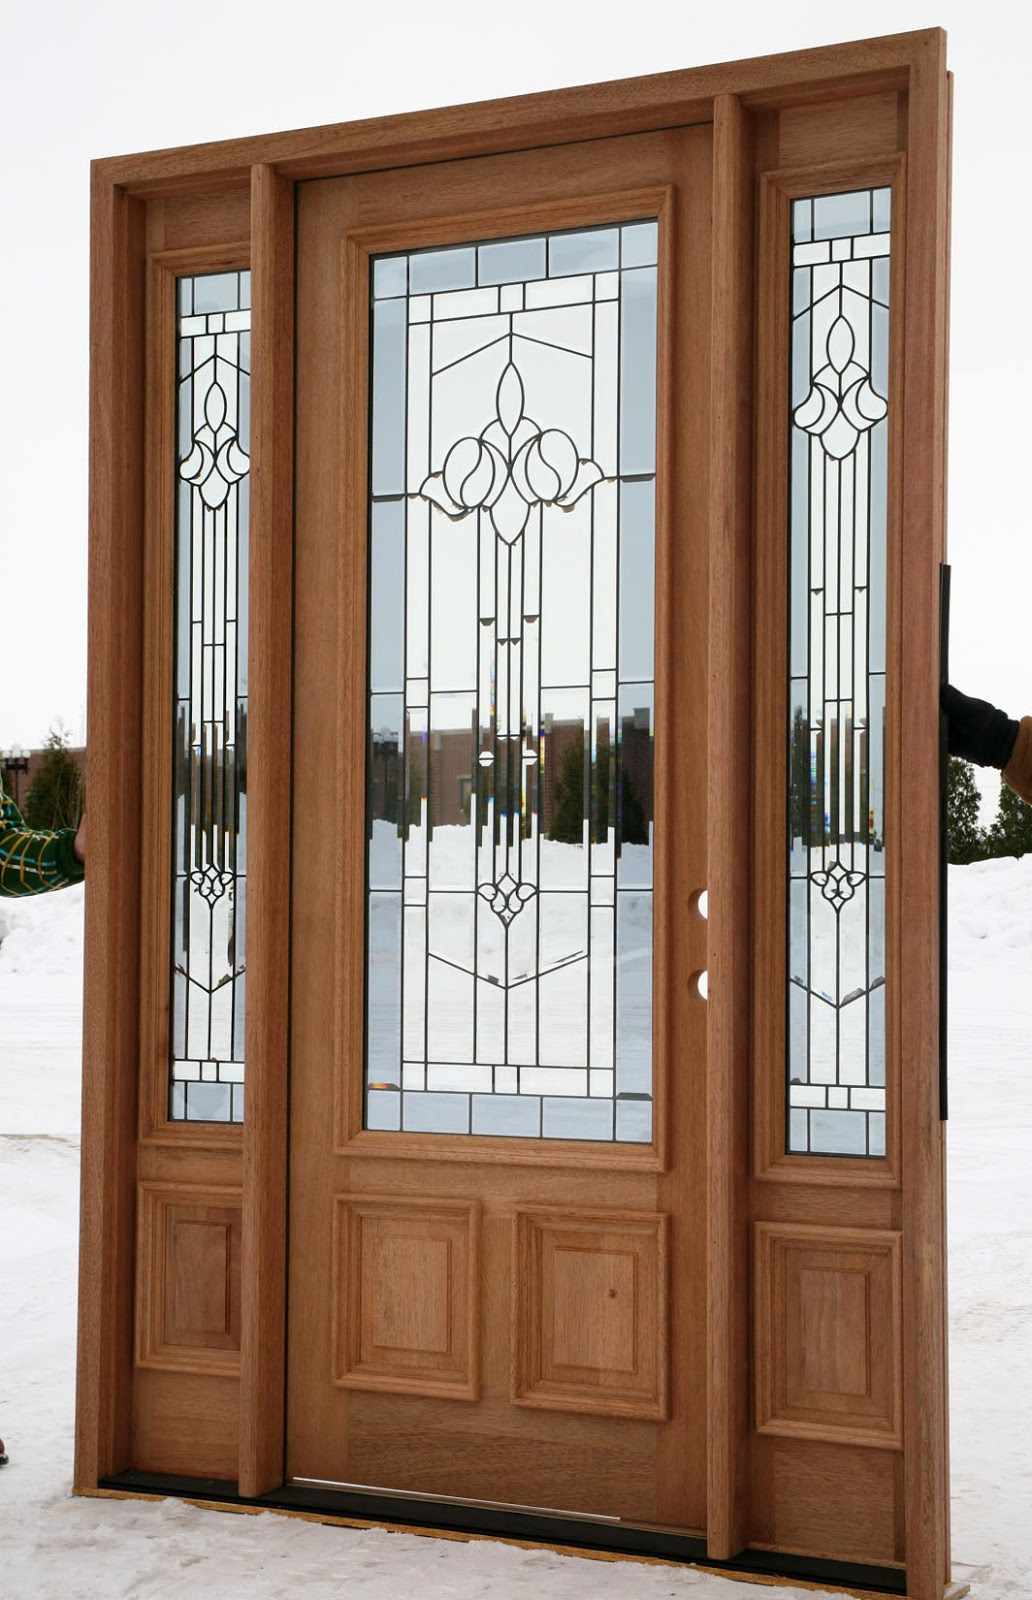 5 front entry doors with sidelights ideas instant knowledge for Front door entrance ideas